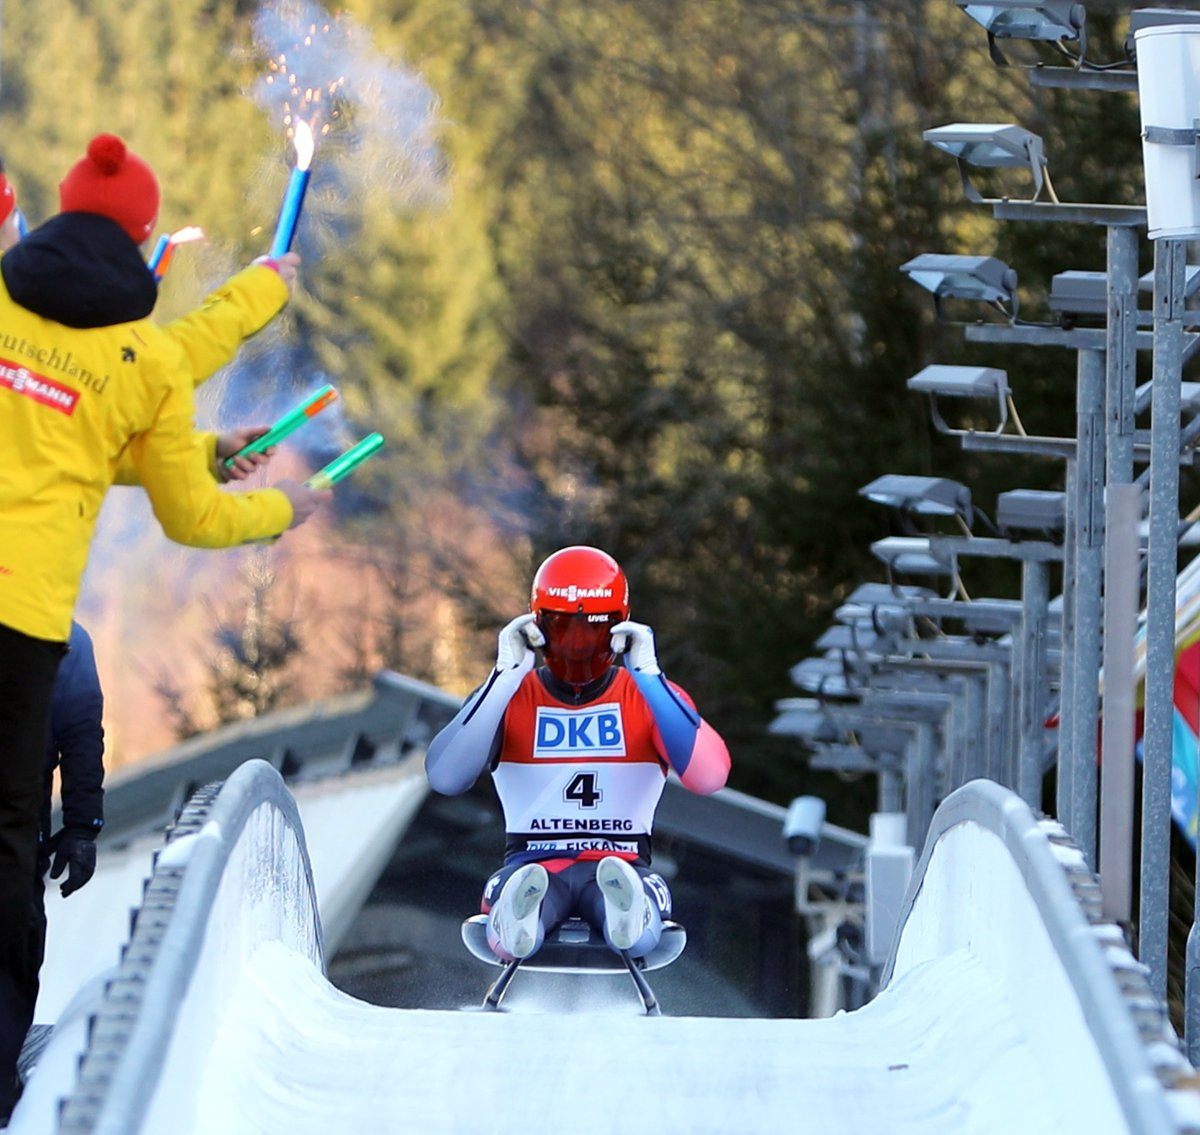 Max Langenhan helped Germany to the team title in Altenberg ©Twitter